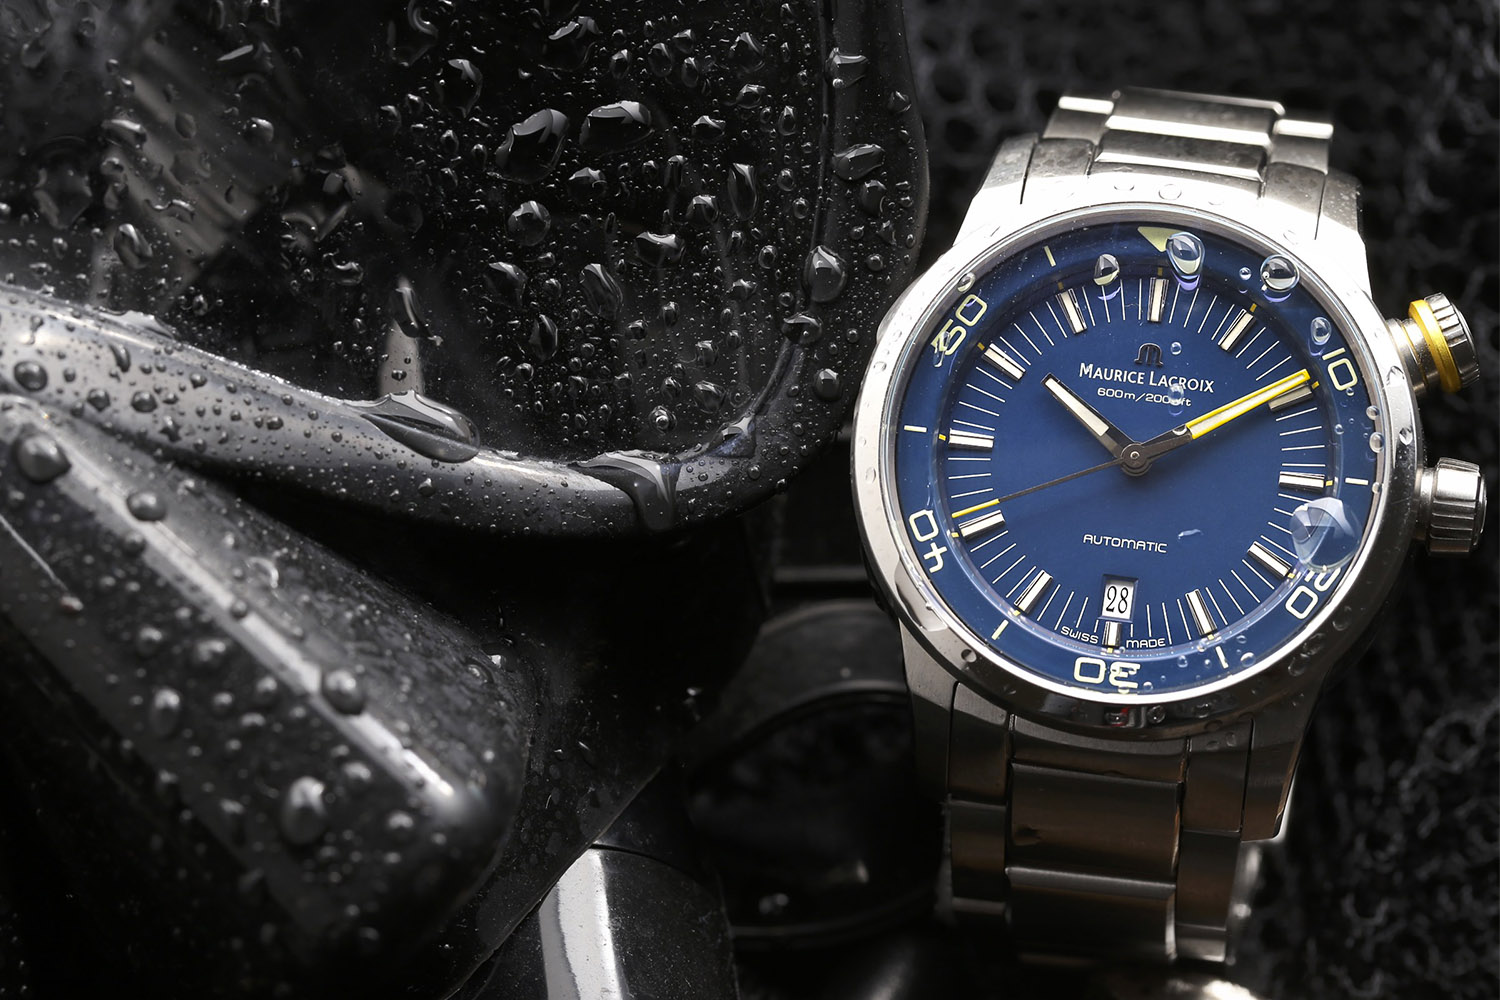 """Introducing – Maurice Lacroix Pontos S Diver """"Blue Devil"""" Limited Edition for North America – The Devil is in the Details"""